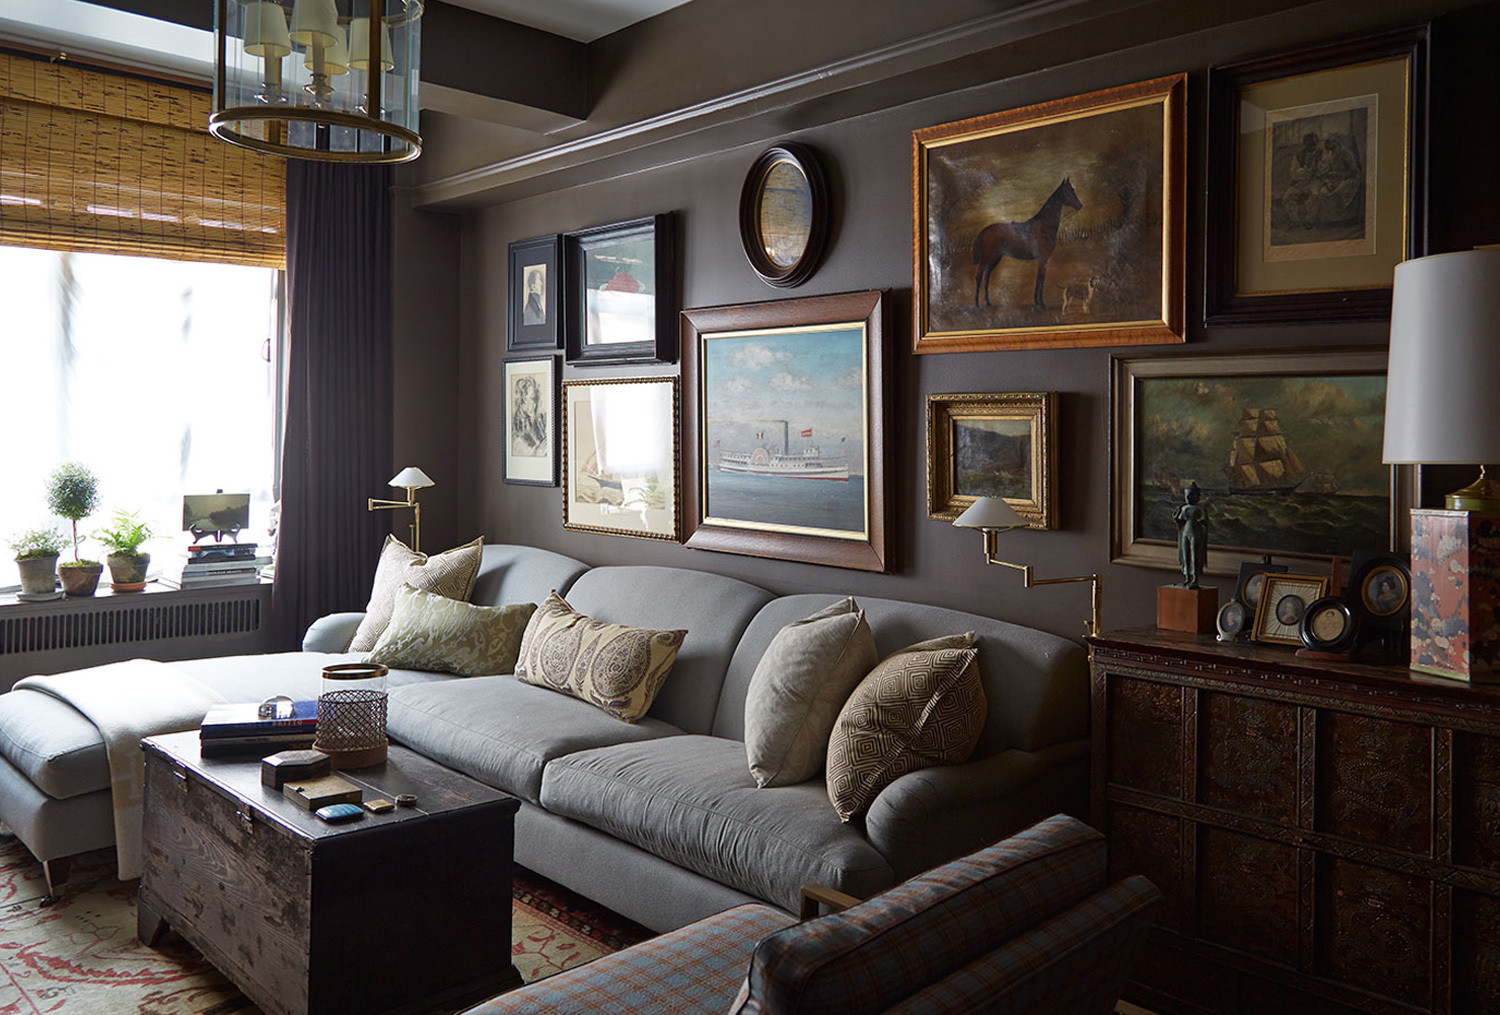 In the study, the Beares' collection of artlooks polished yet unstuffy when hung in an informal arrangement.